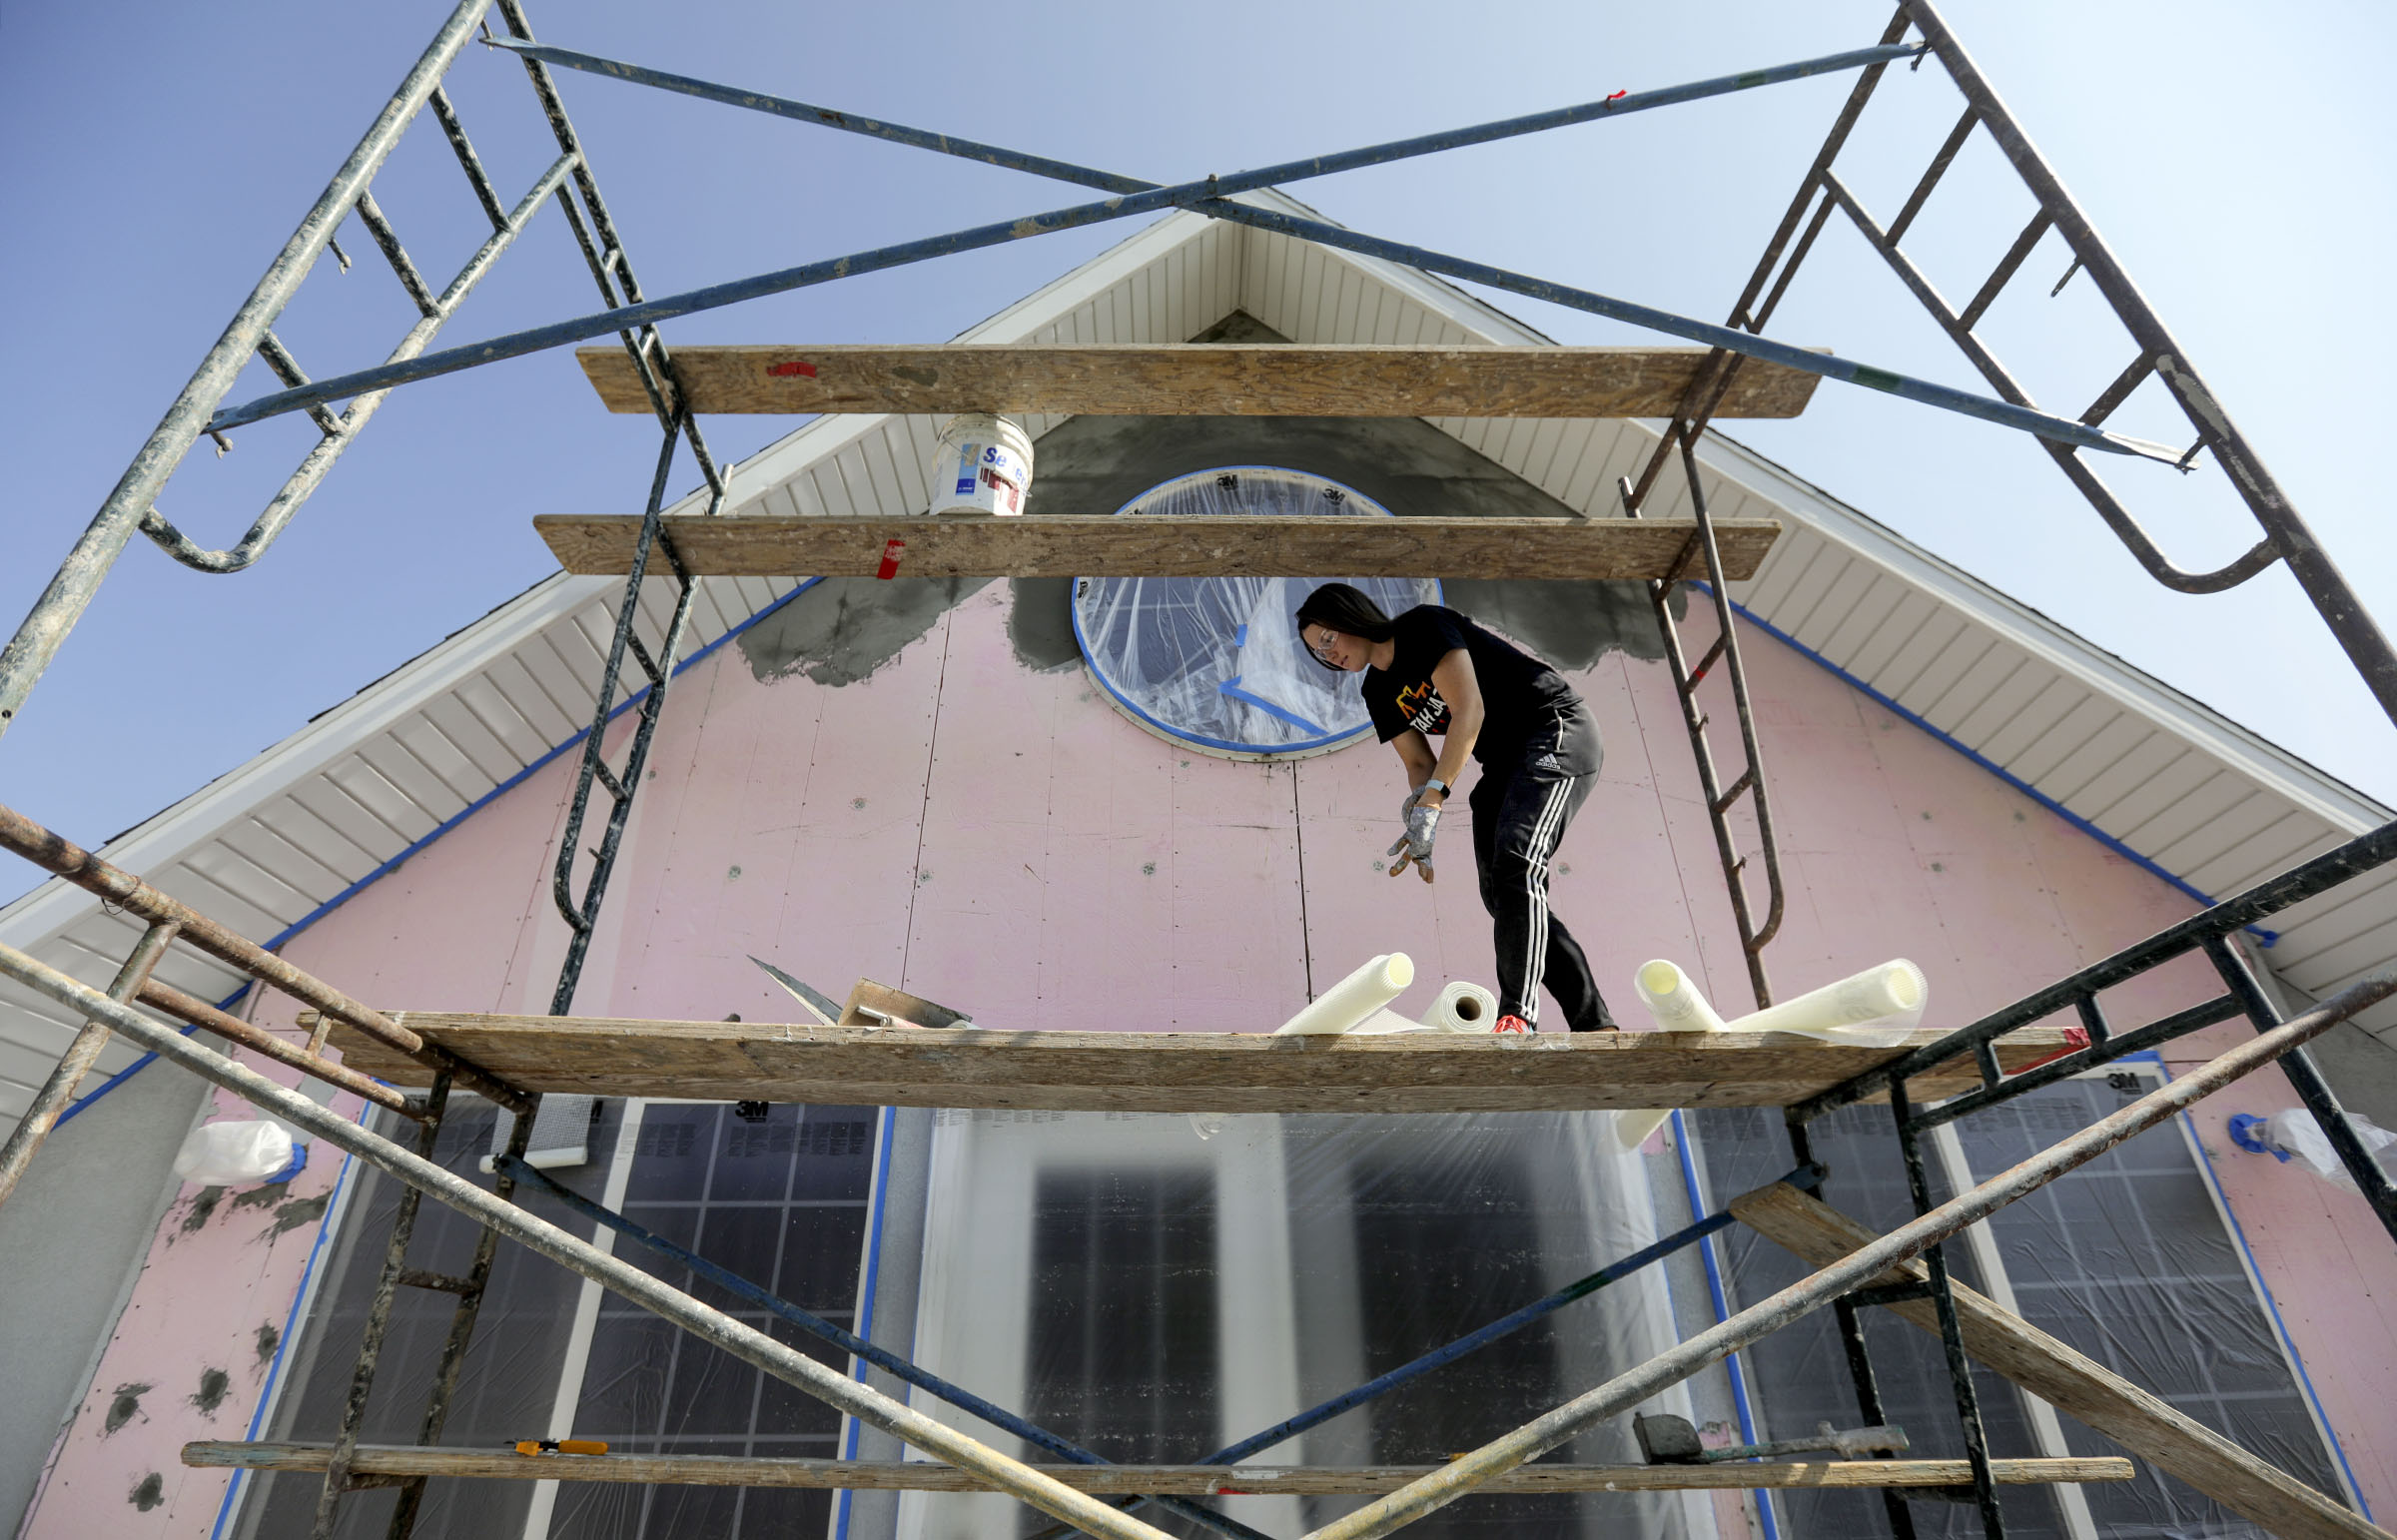 Kelsie Wadsworth preps a wall for stucco as she works on a house with McCoy's Stucco Repair in Springville on Tuesday, Oct. 6, 2020. Wadsworth was connected to McCoy's Stucco Repair through the Bacon app.